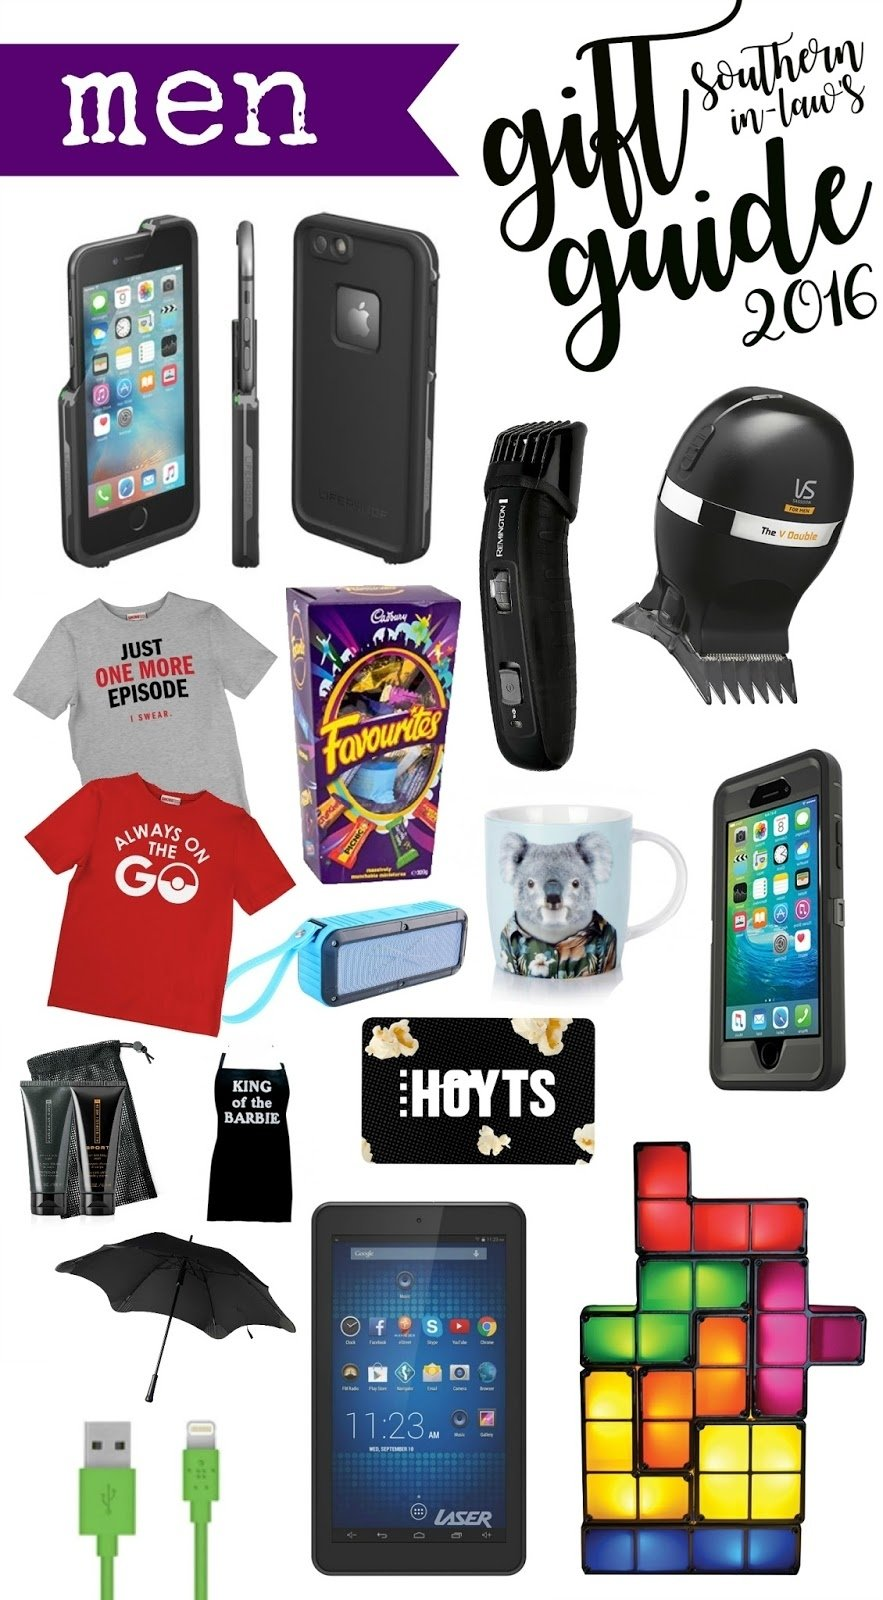 10 Fabulous Gift Ideas For A Brother southern in law 2016 mens christmas gift guide 2 2020